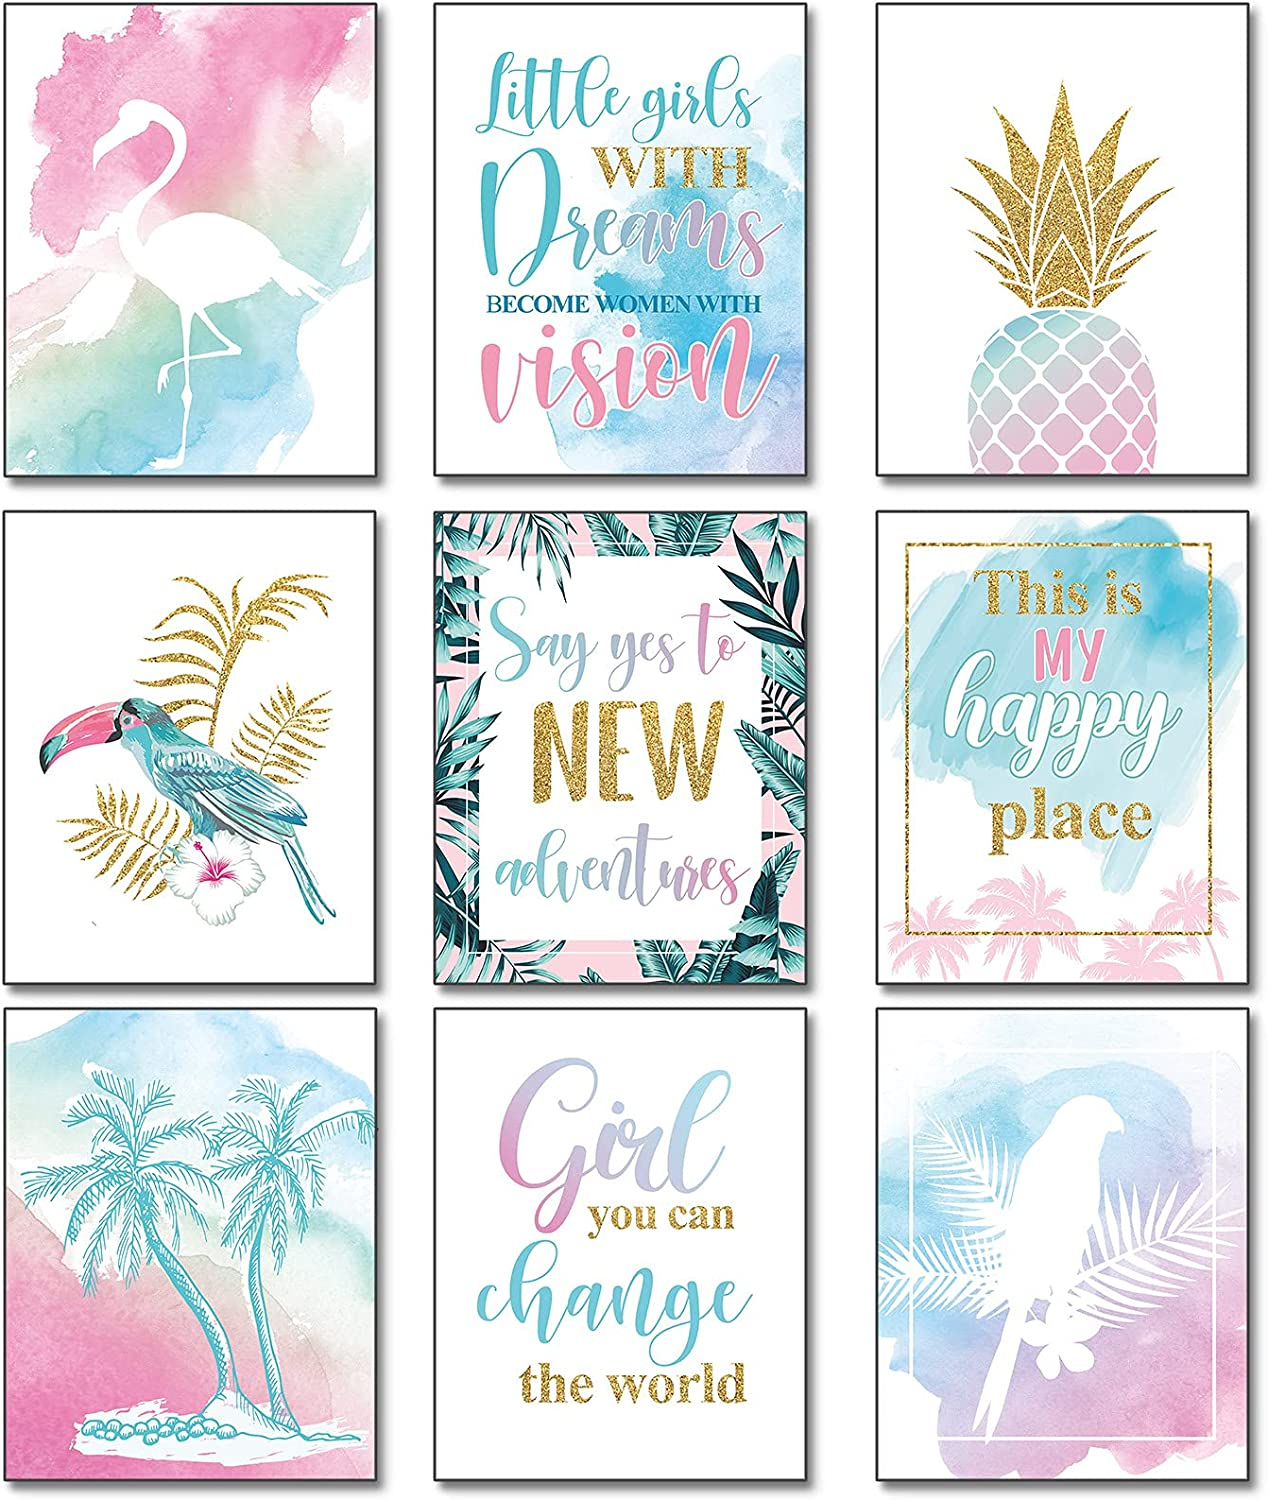 9 Pieces Inspirational Teen Girl Room Wall Decor Wall Art Prints Abstract Inspirational Wall Art Motivational Quotes Posters for Women Bedroom Living Room Kitchen Office, Unframed